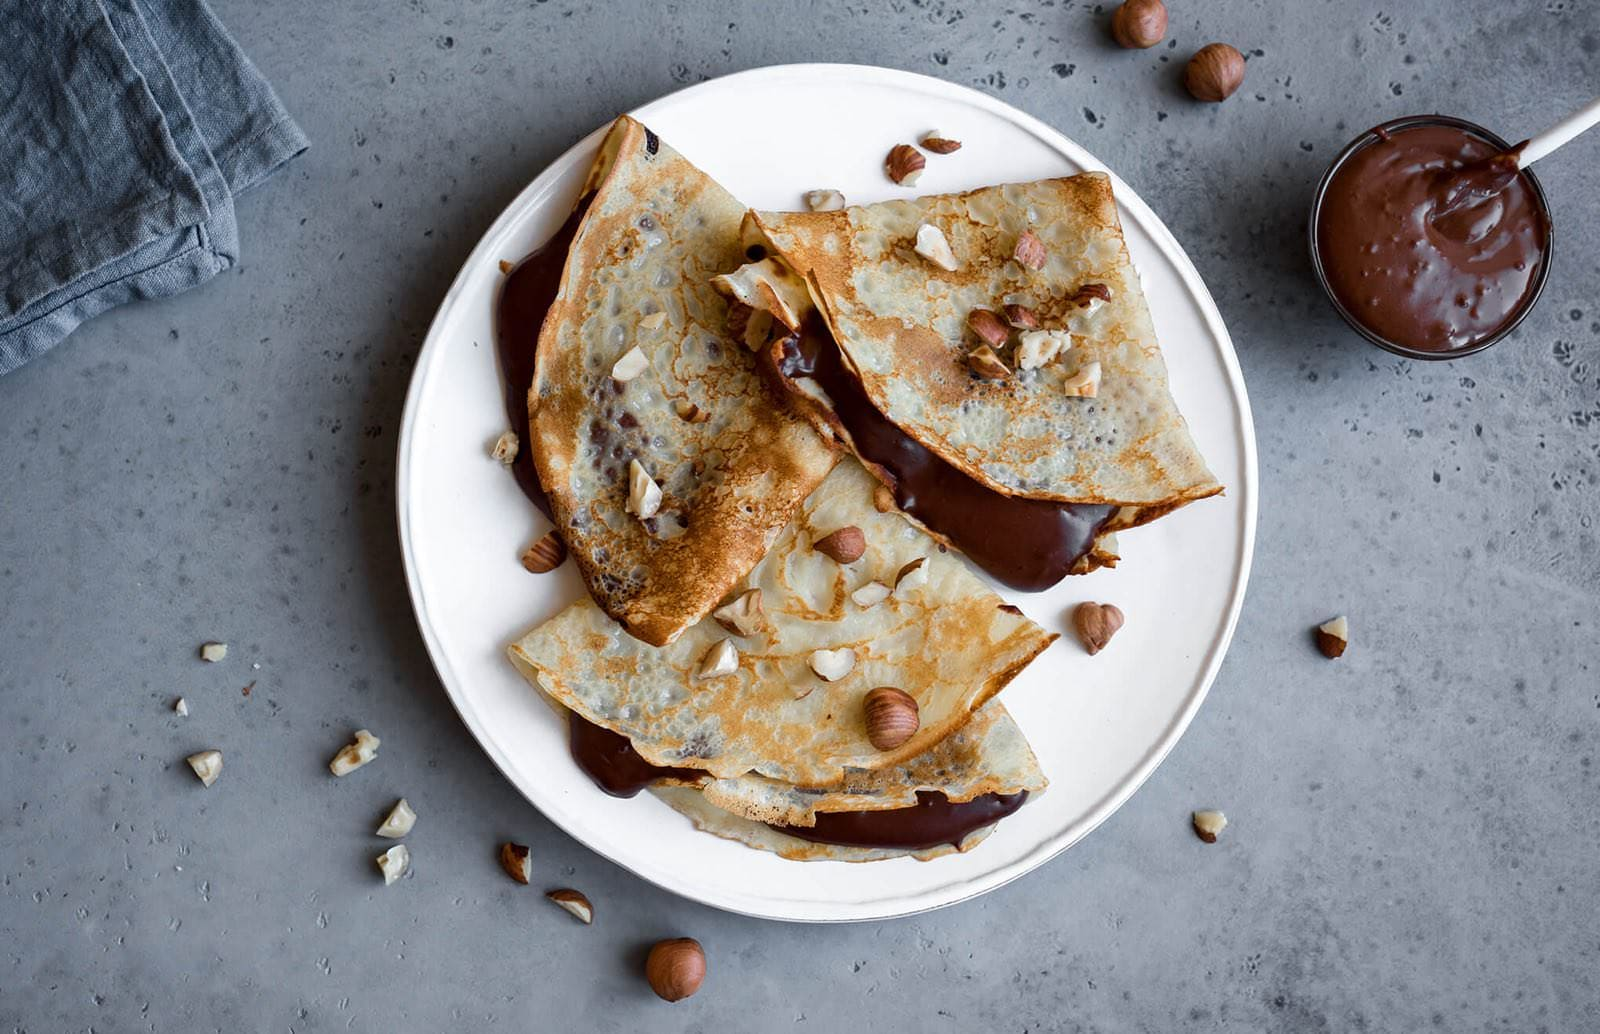 OuiPlease OuiCook French Chocolate Crepe Recipe